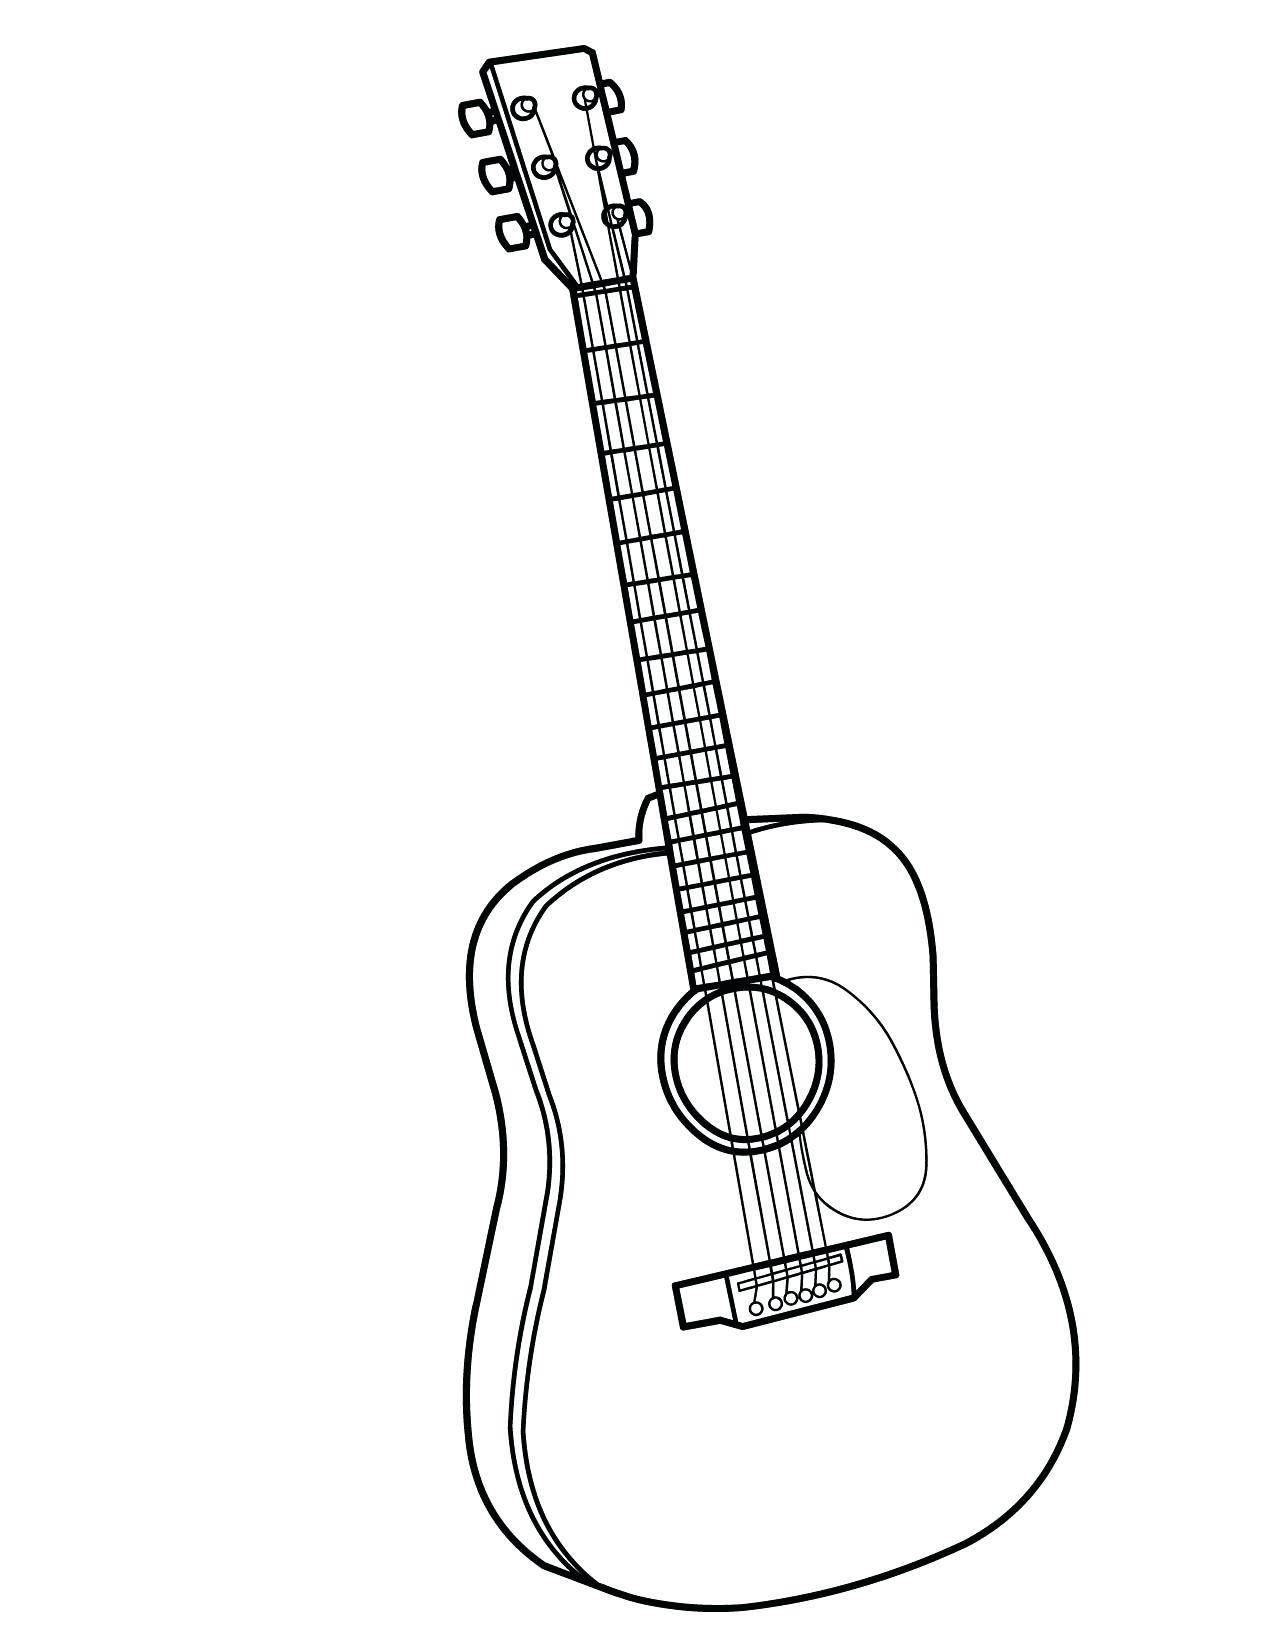 18 Coloring Page Guitar Coloring For Kids Music Coloring Coloring Pages